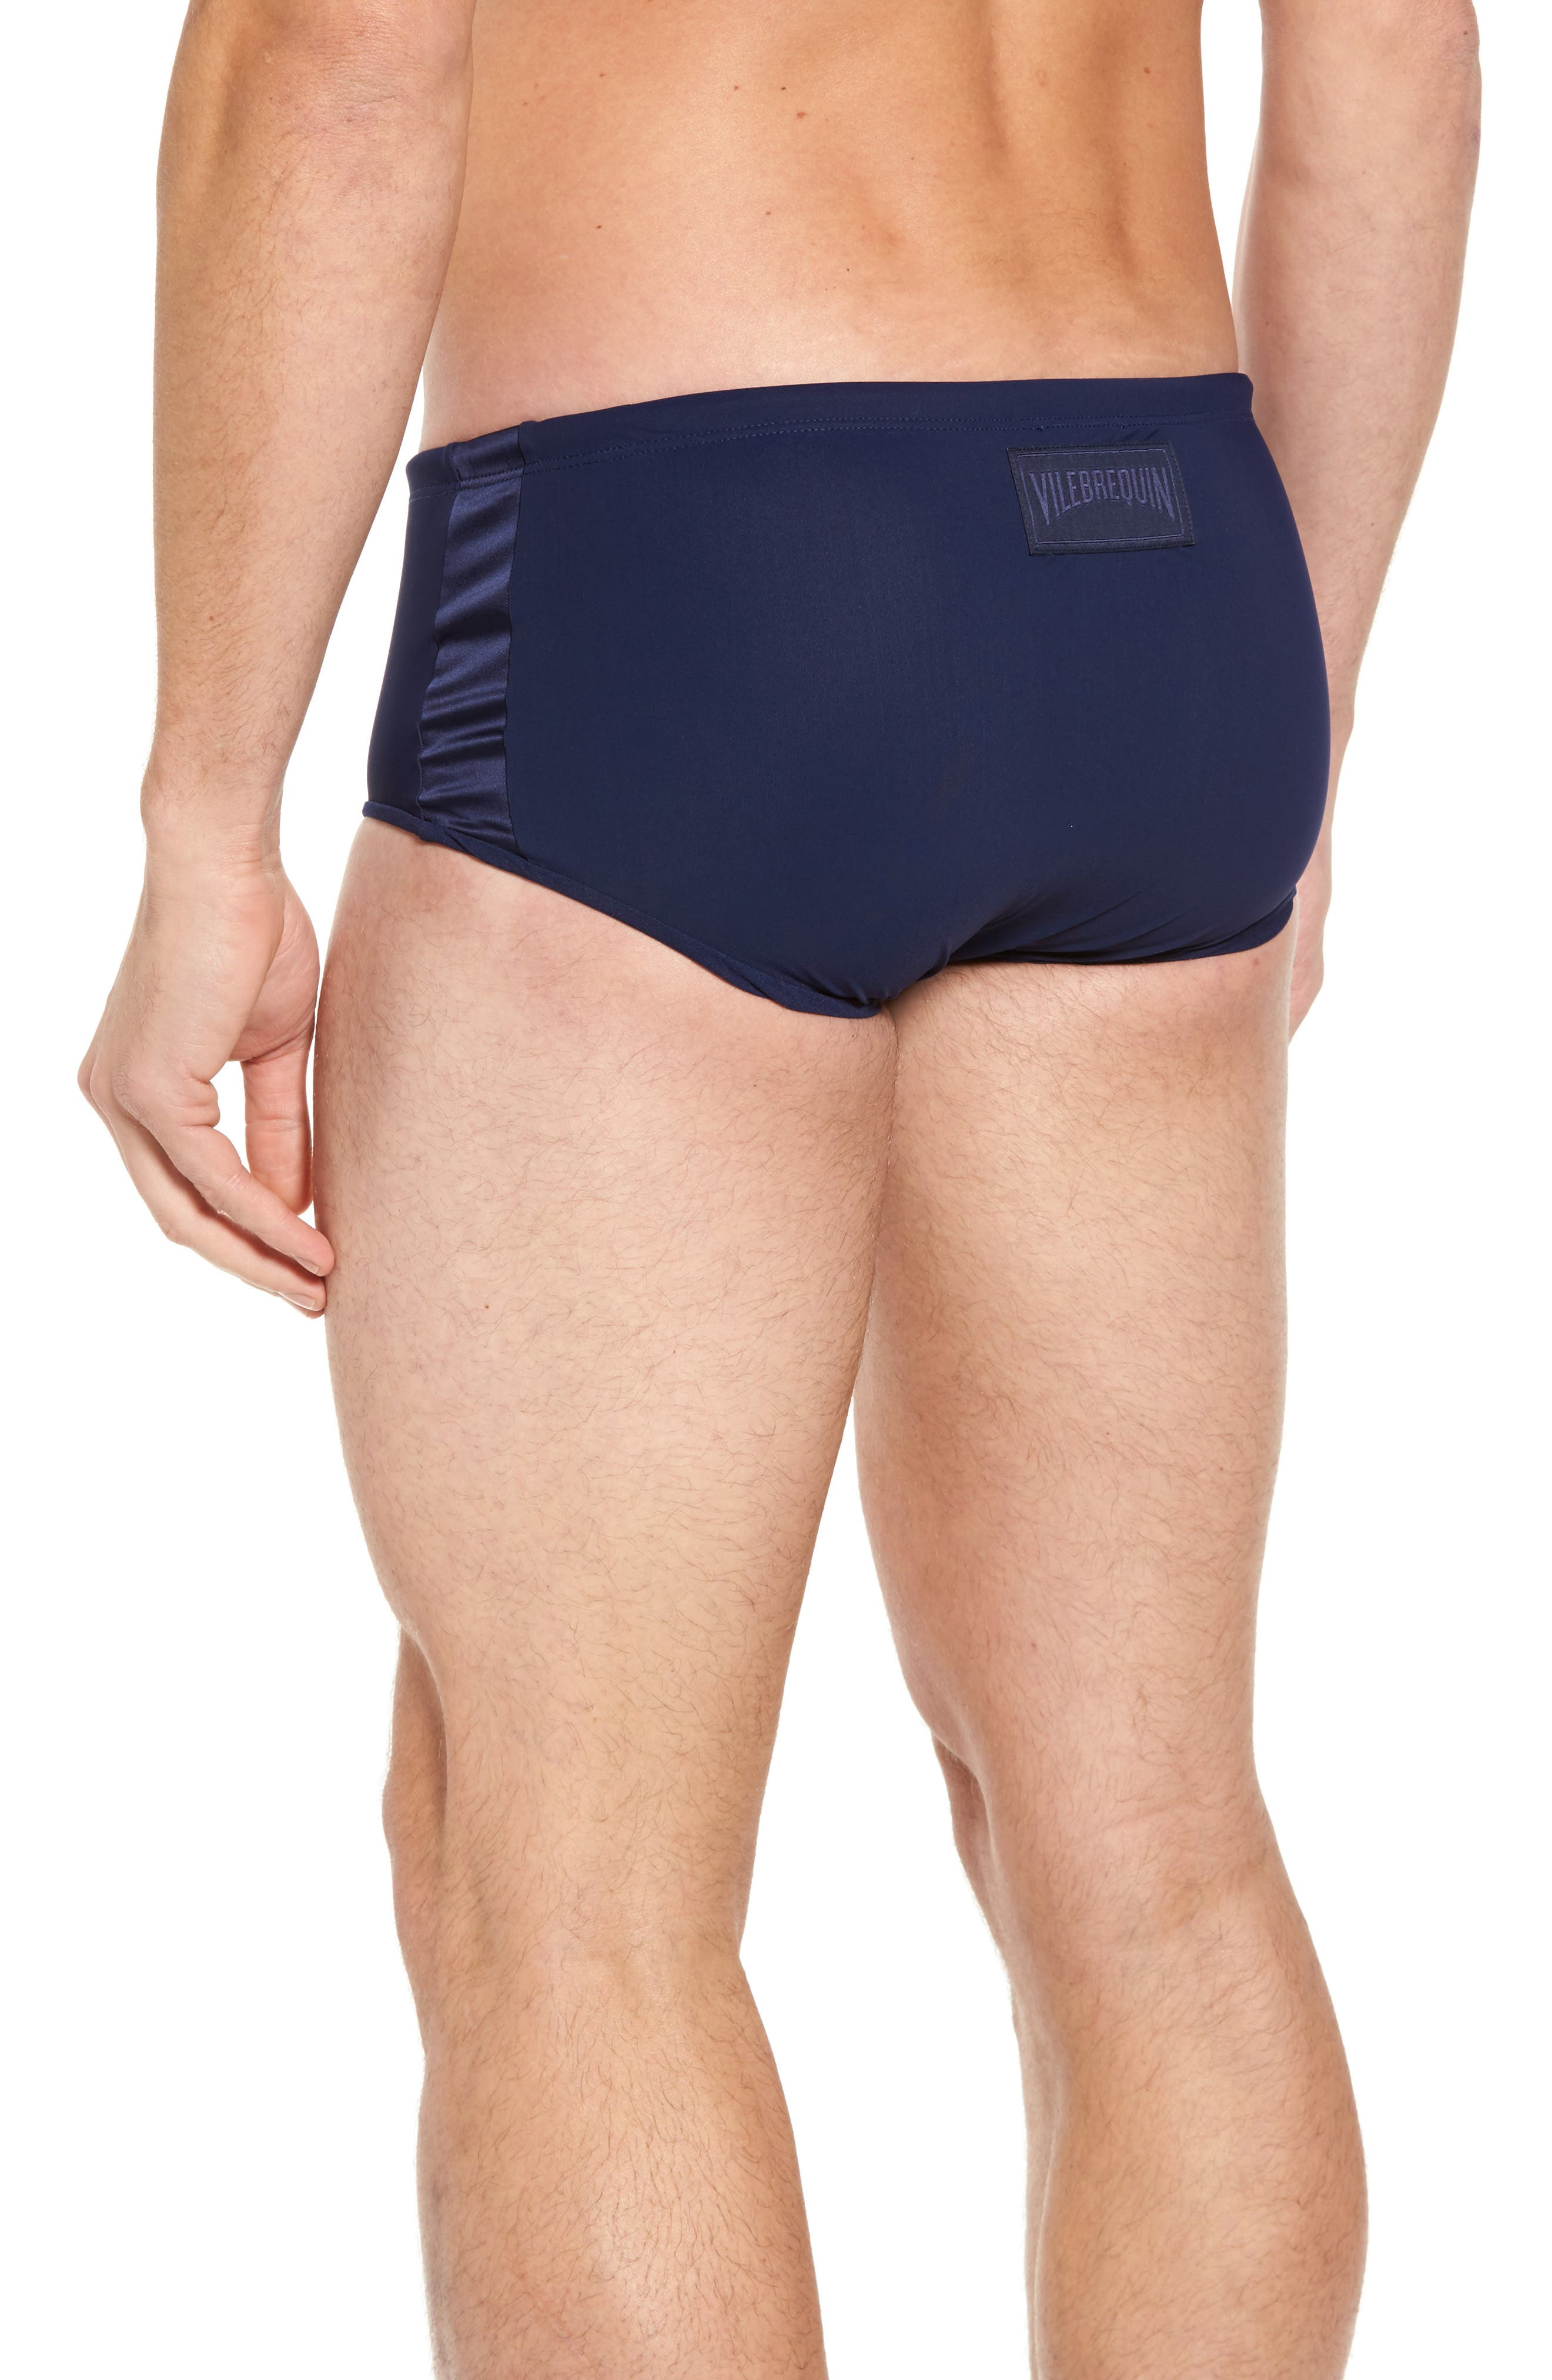 Tuxedo Swim Briefs,                             Alternate thumbnail 2, color,                             Navy